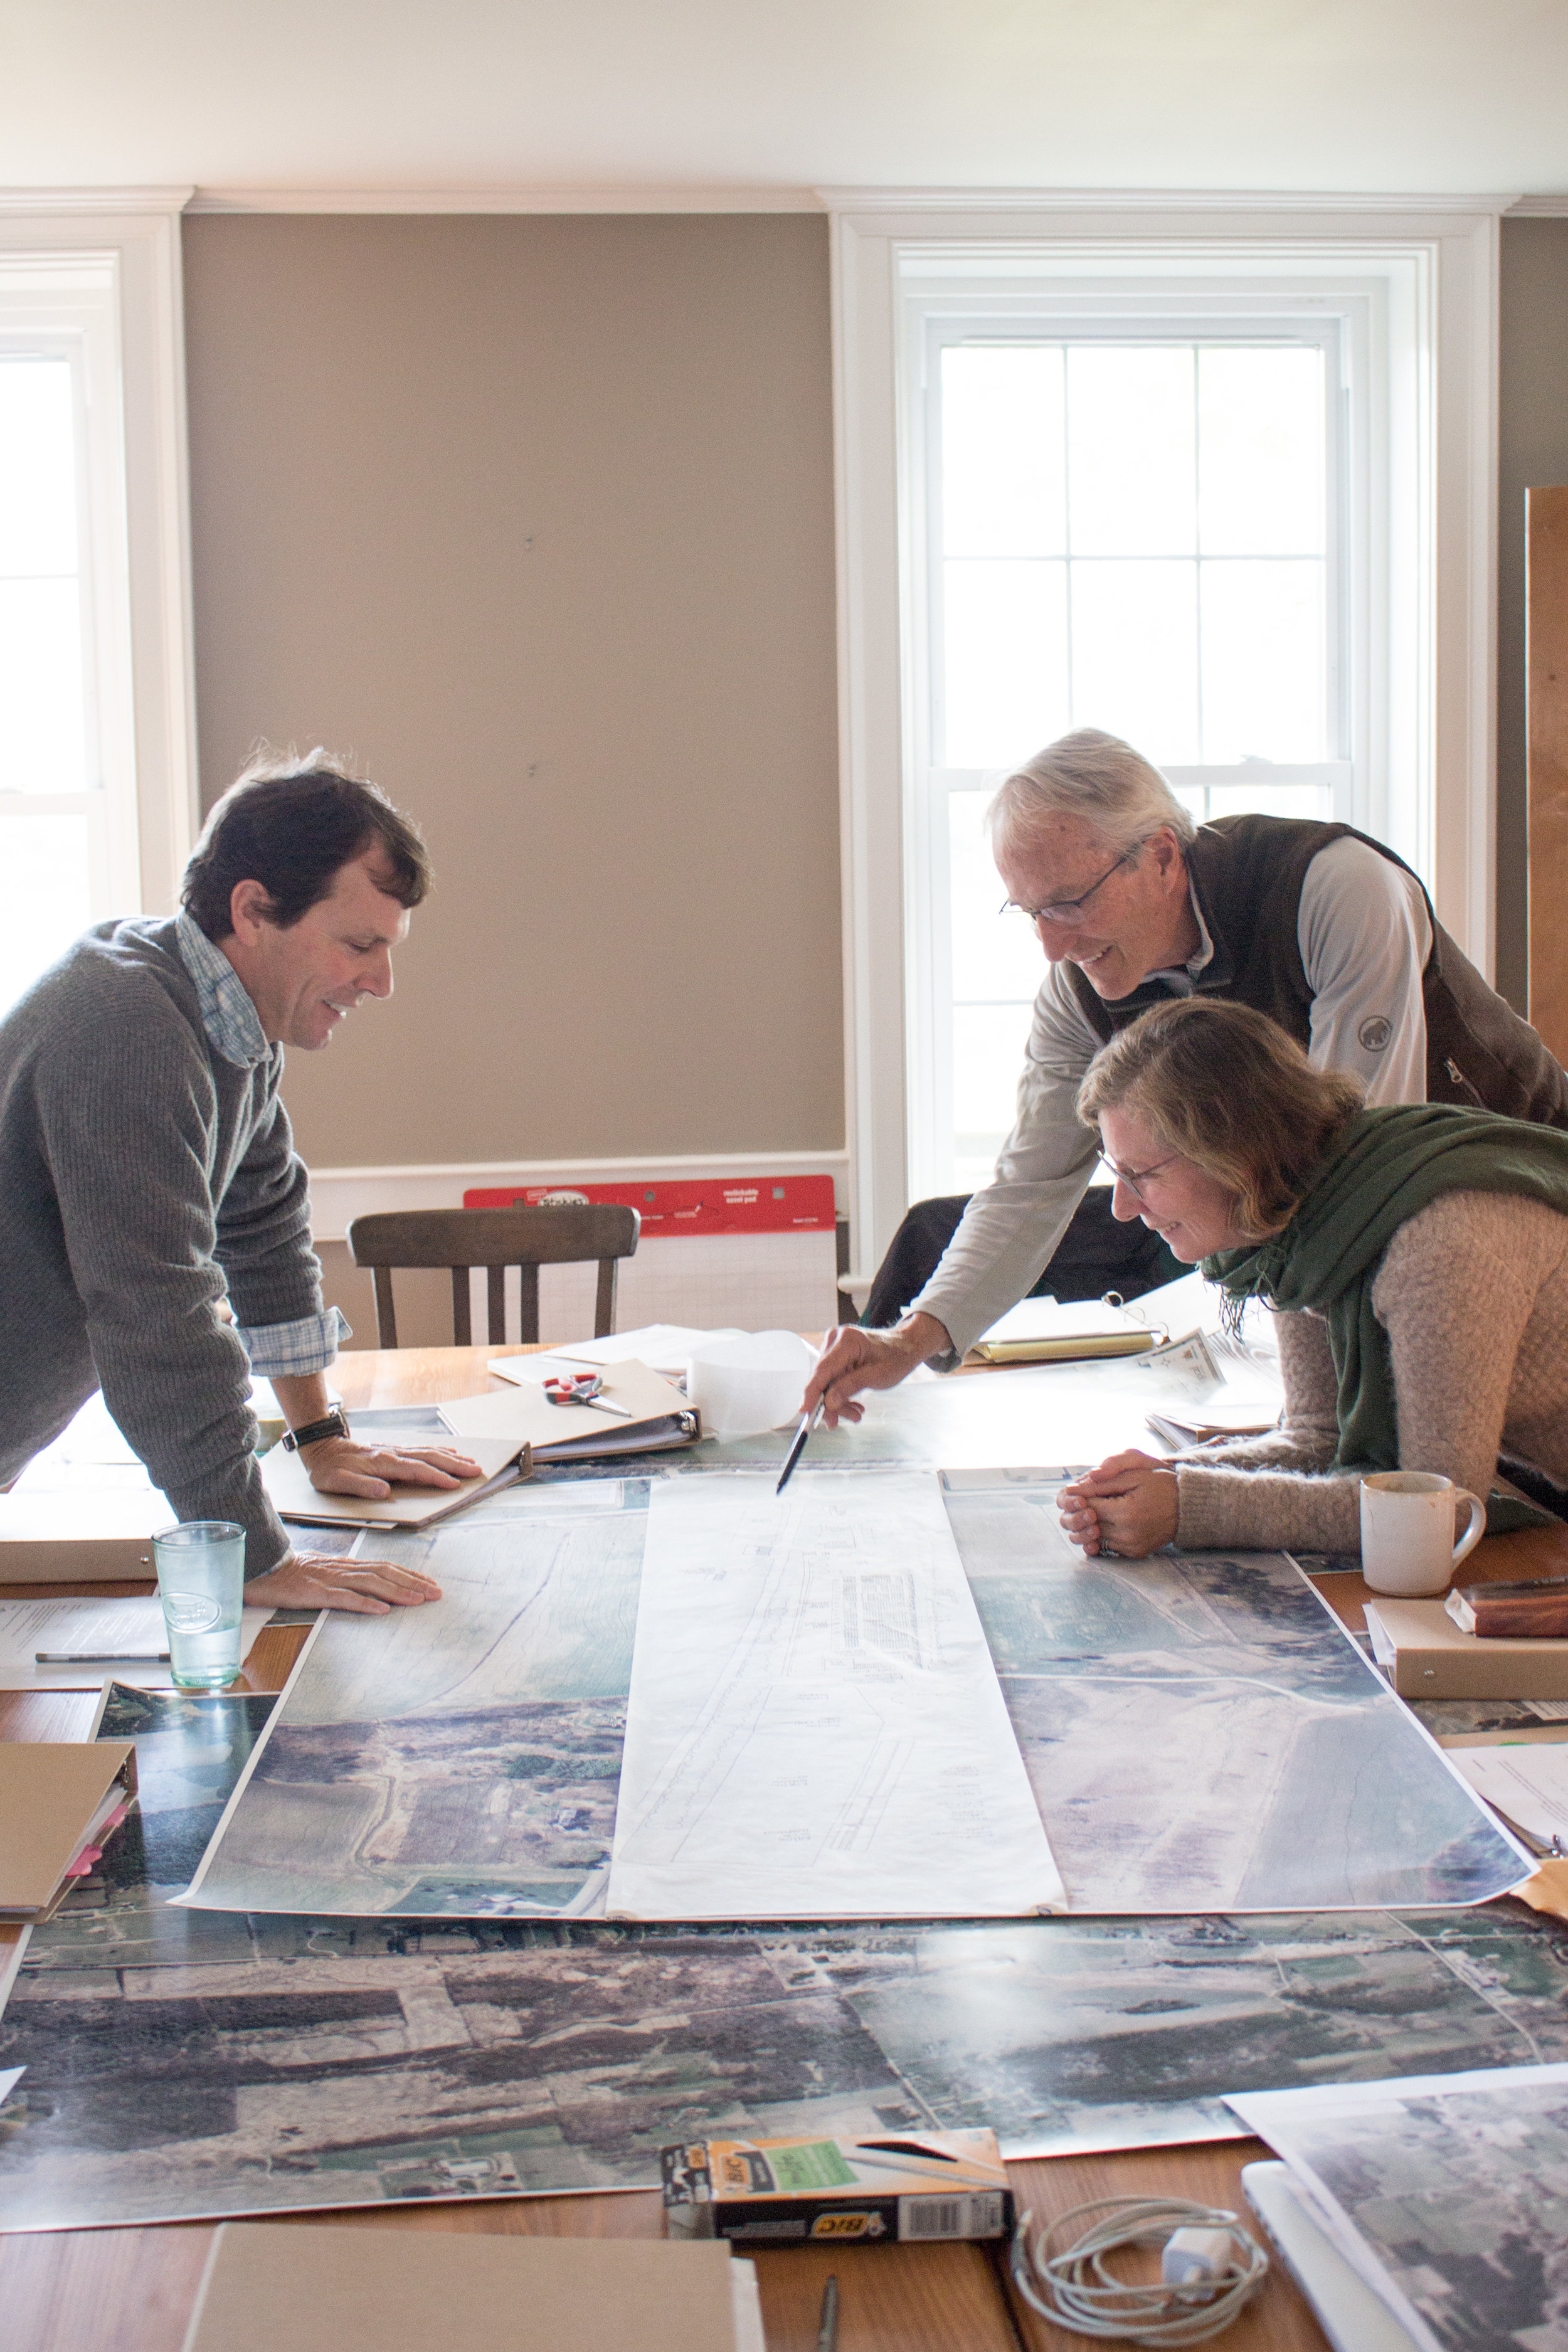 Peter Swift, Diana McCargo and Grant McCargo farm planning and visioning in October 2015.